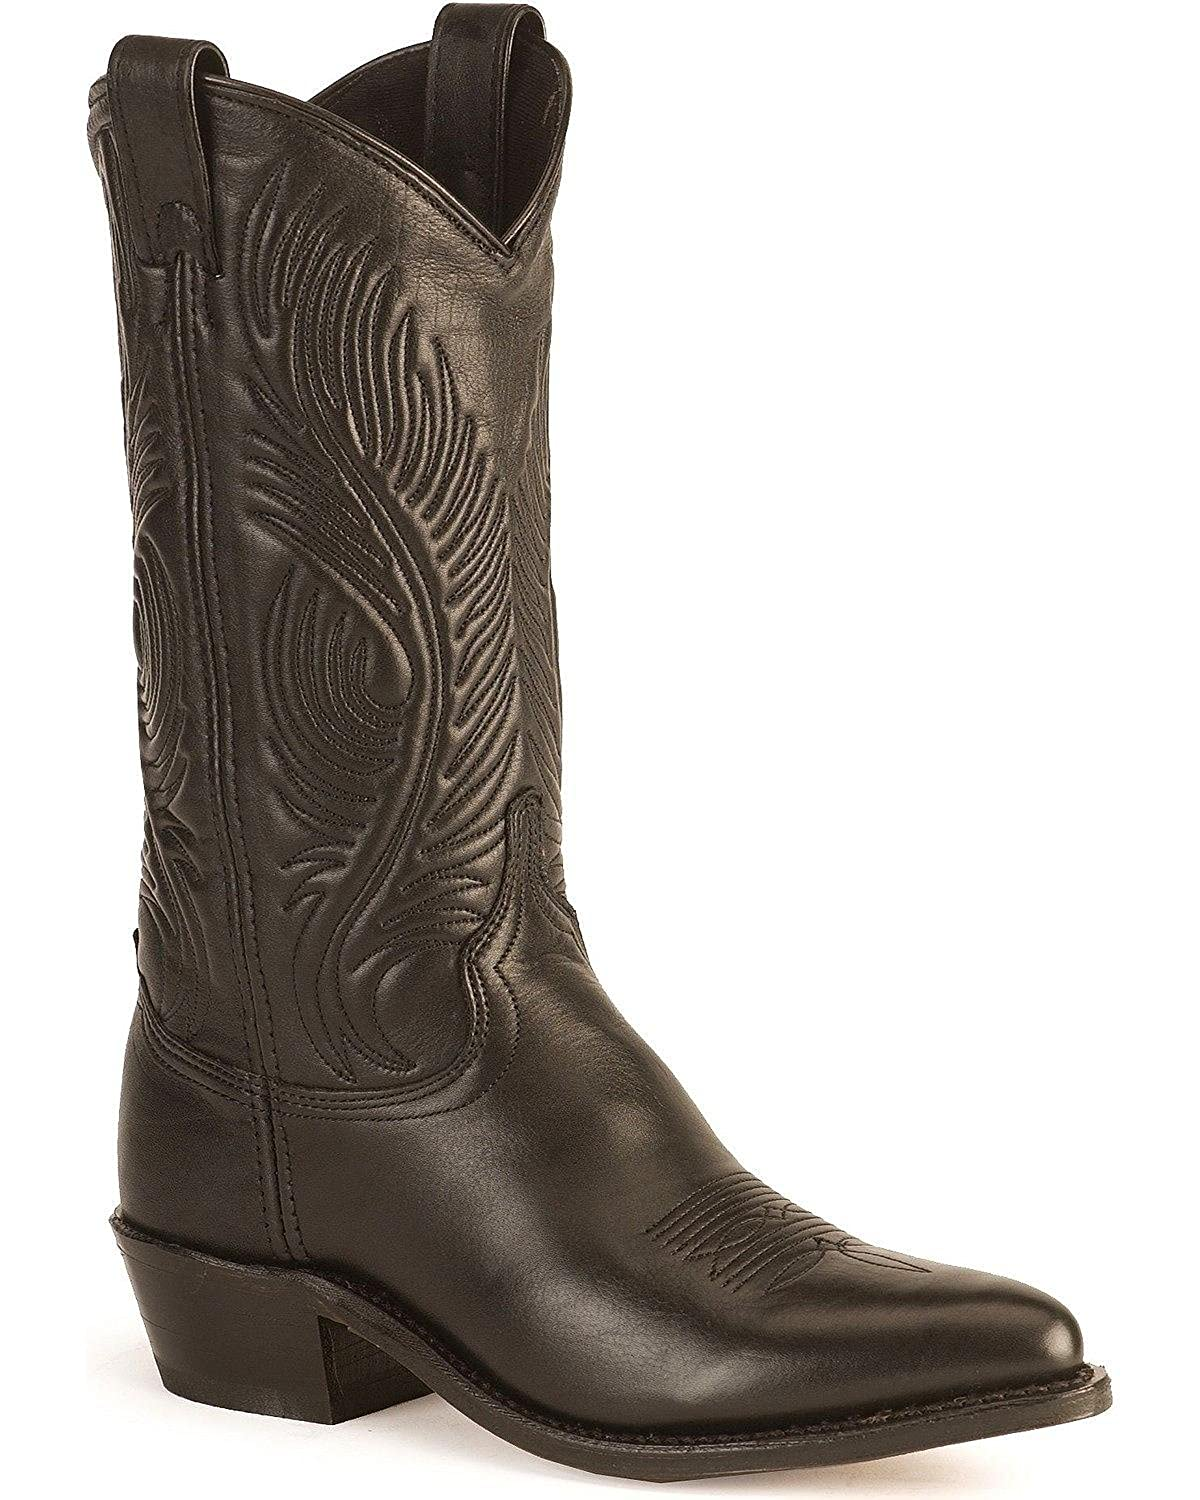 c8cc00fc32 Amazon.com | Abilene Women's Whipstitched Cowgirl Boot | Boots